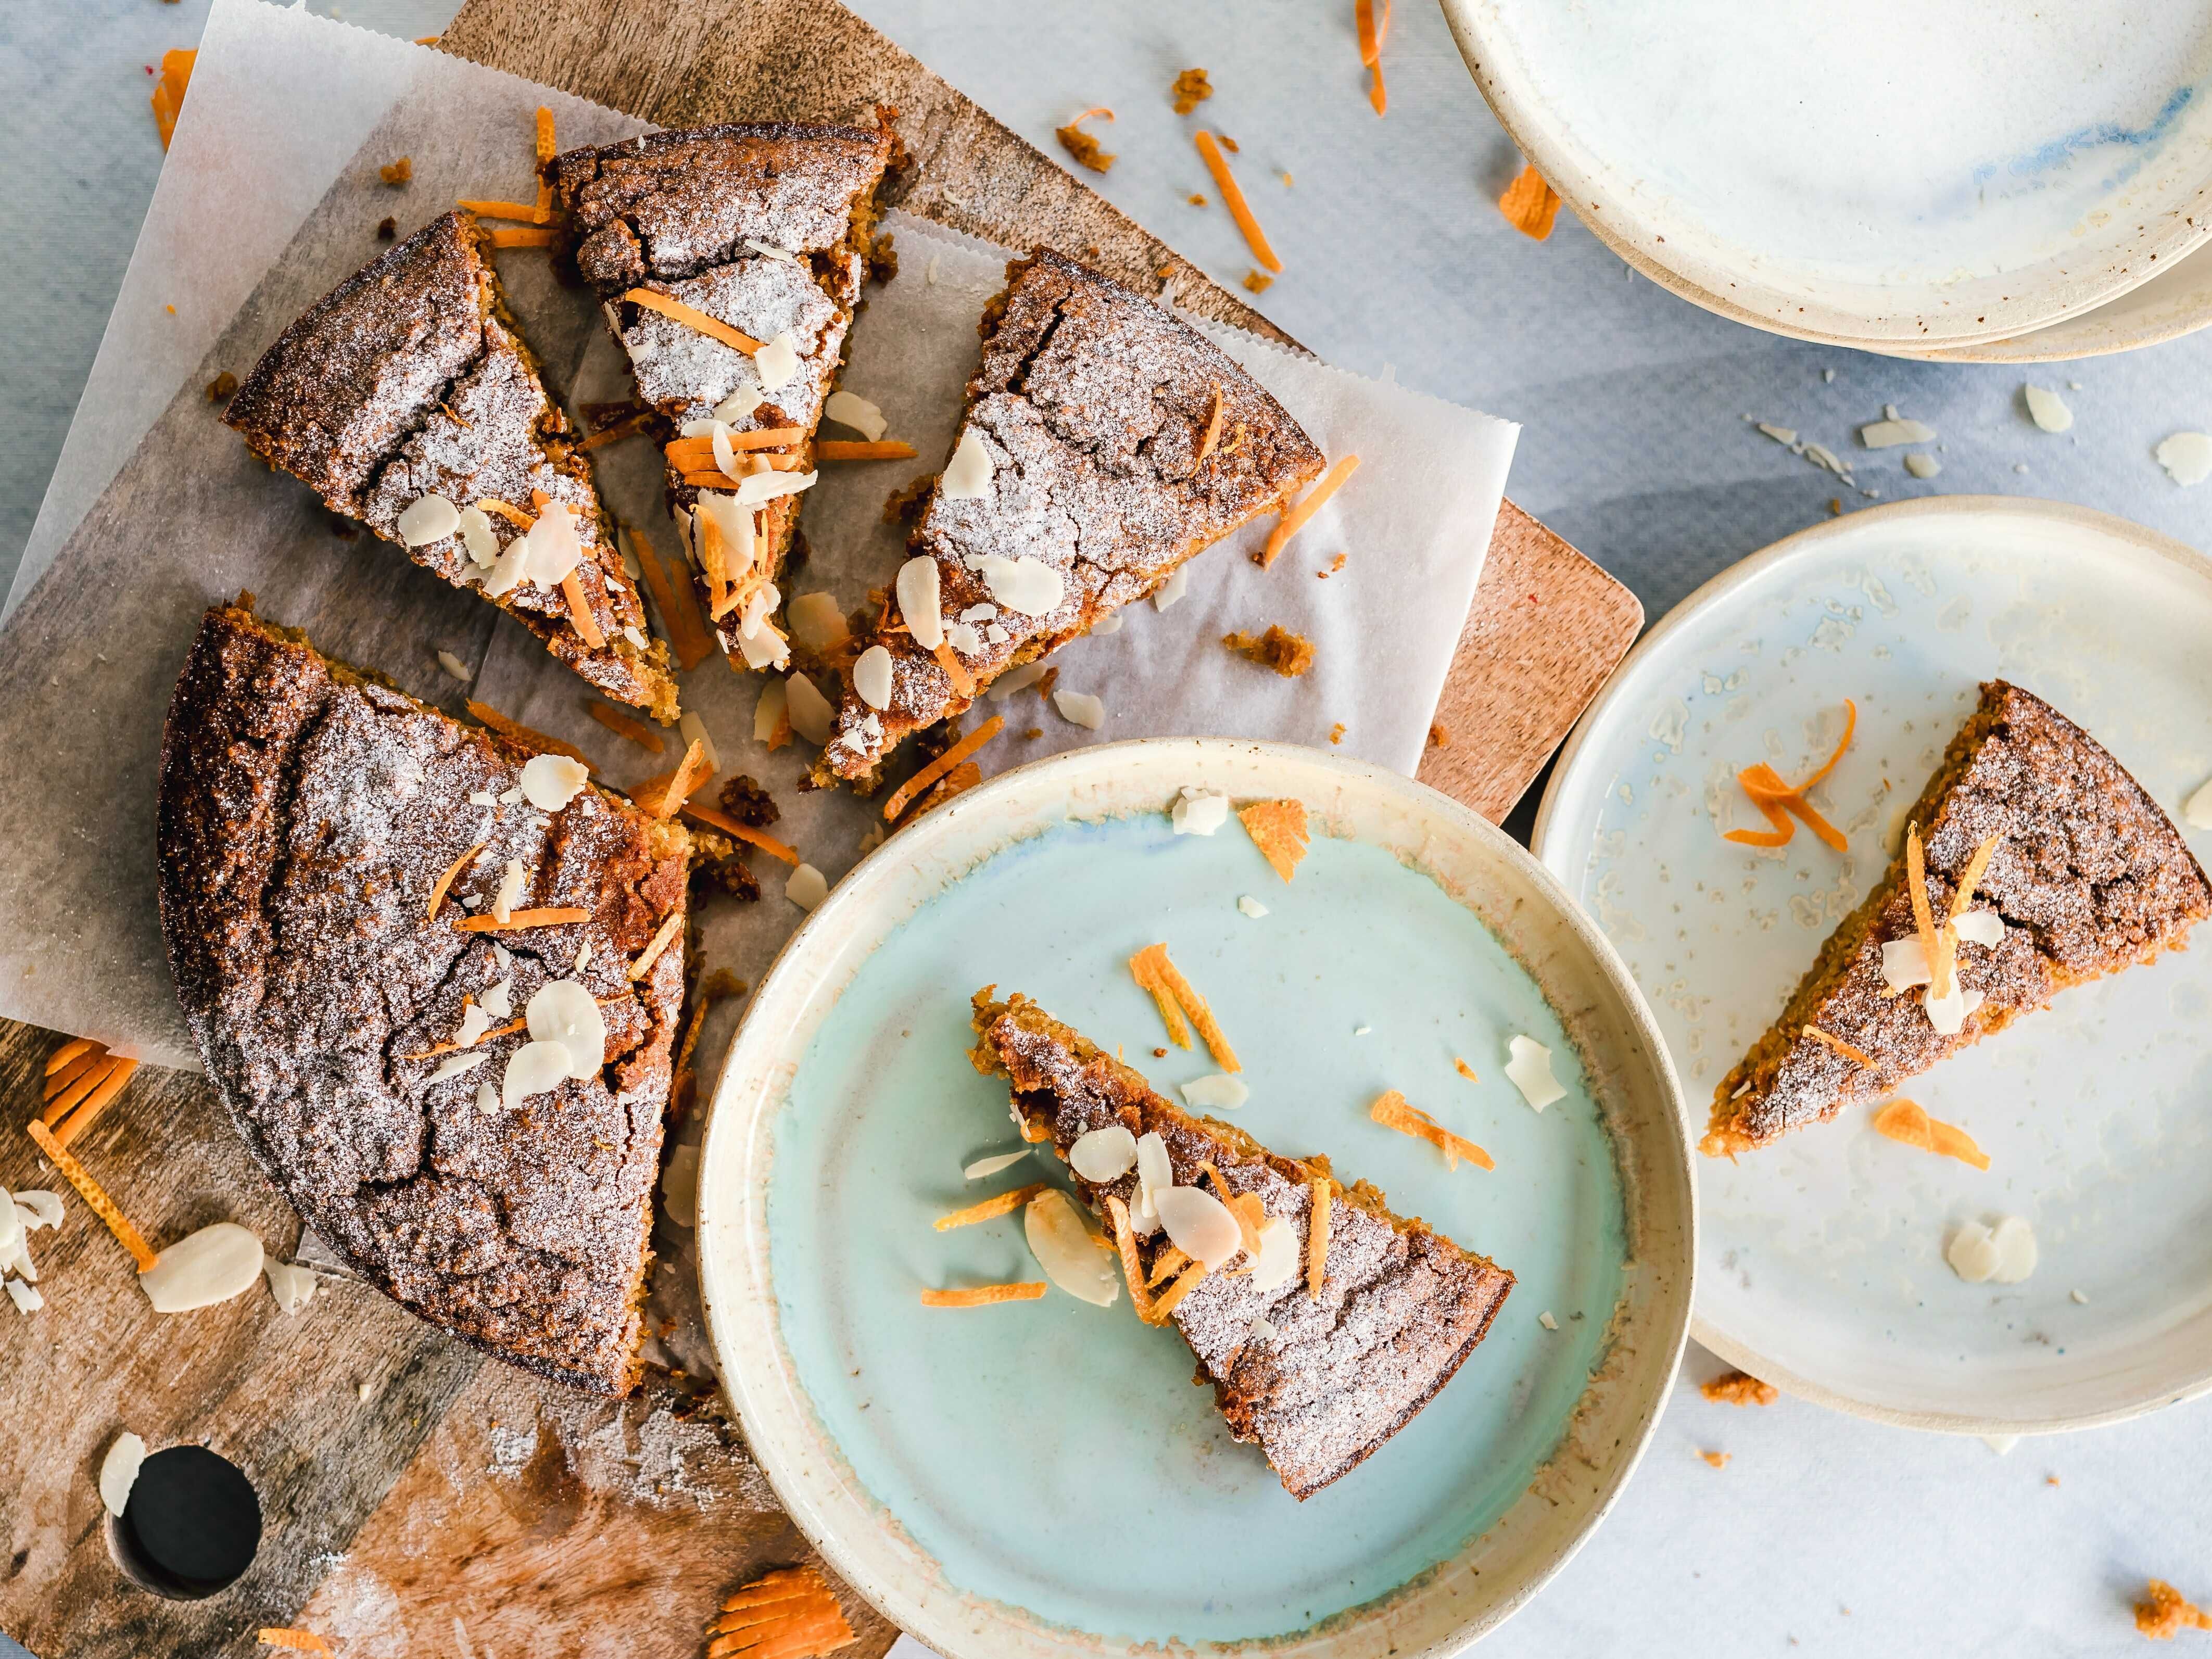 a slices of almond cake